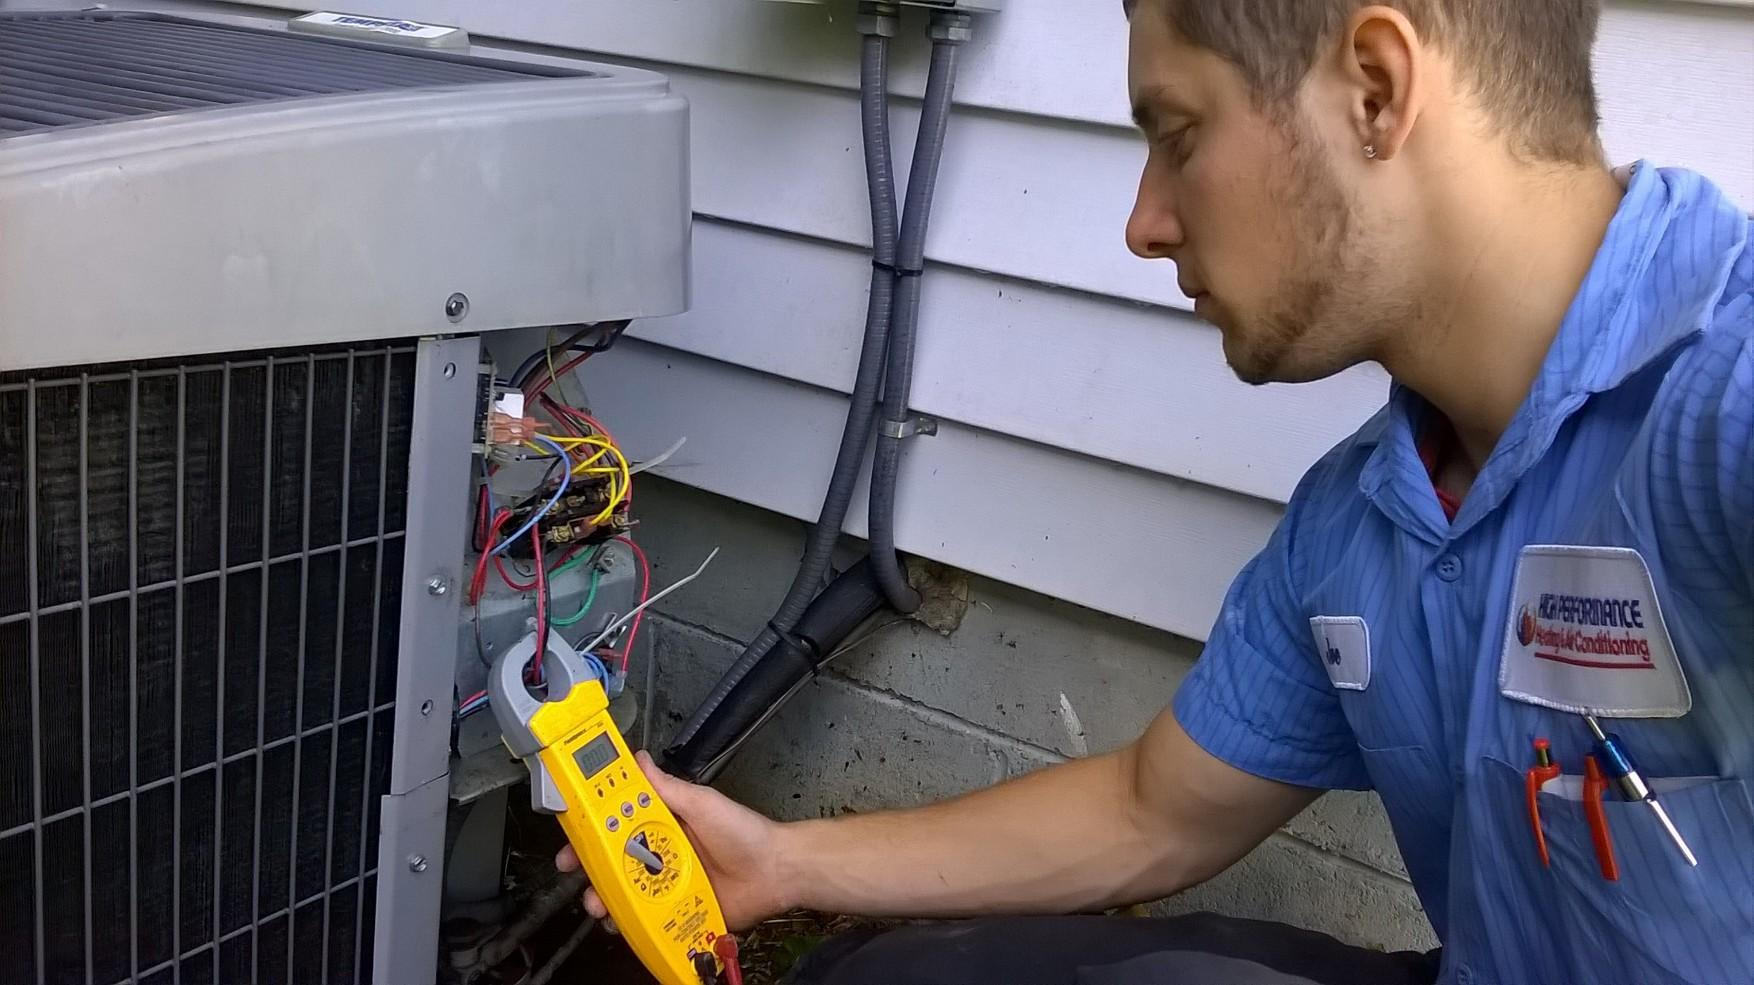 HVAC Technician checking the power consumption of a Air Conditioning unit while performing hvac service.